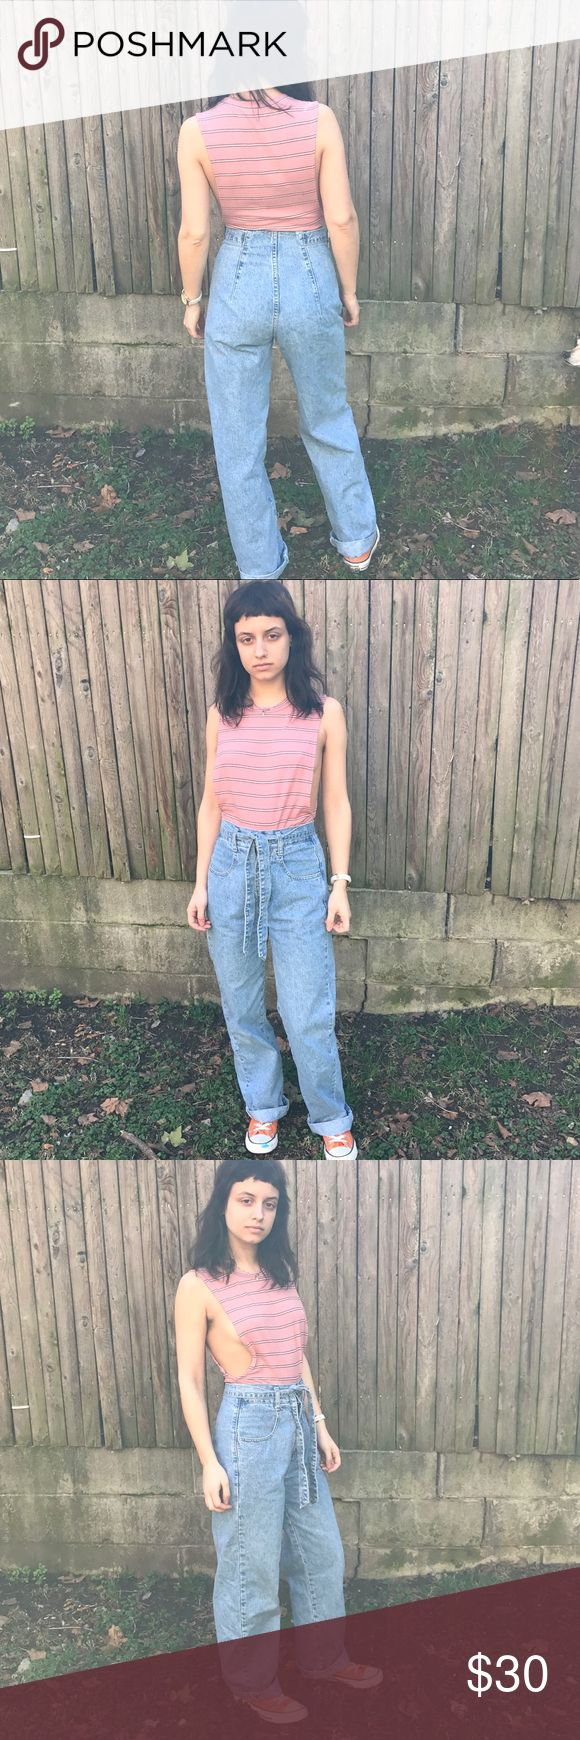 """High waisted Light Denim Vintage Mom Jeans True Vintage Light wash denim mom jeans by County Seat. Bring out your cool 90s chic in these amazing jeans. double button closure with zipper. (one button missing but still closes because other button is there) Matching belt. Size says 3/4.  Model is 5'3"""", 110lbs and they are a perf fit. County Seat Jeans Boyfriend"""